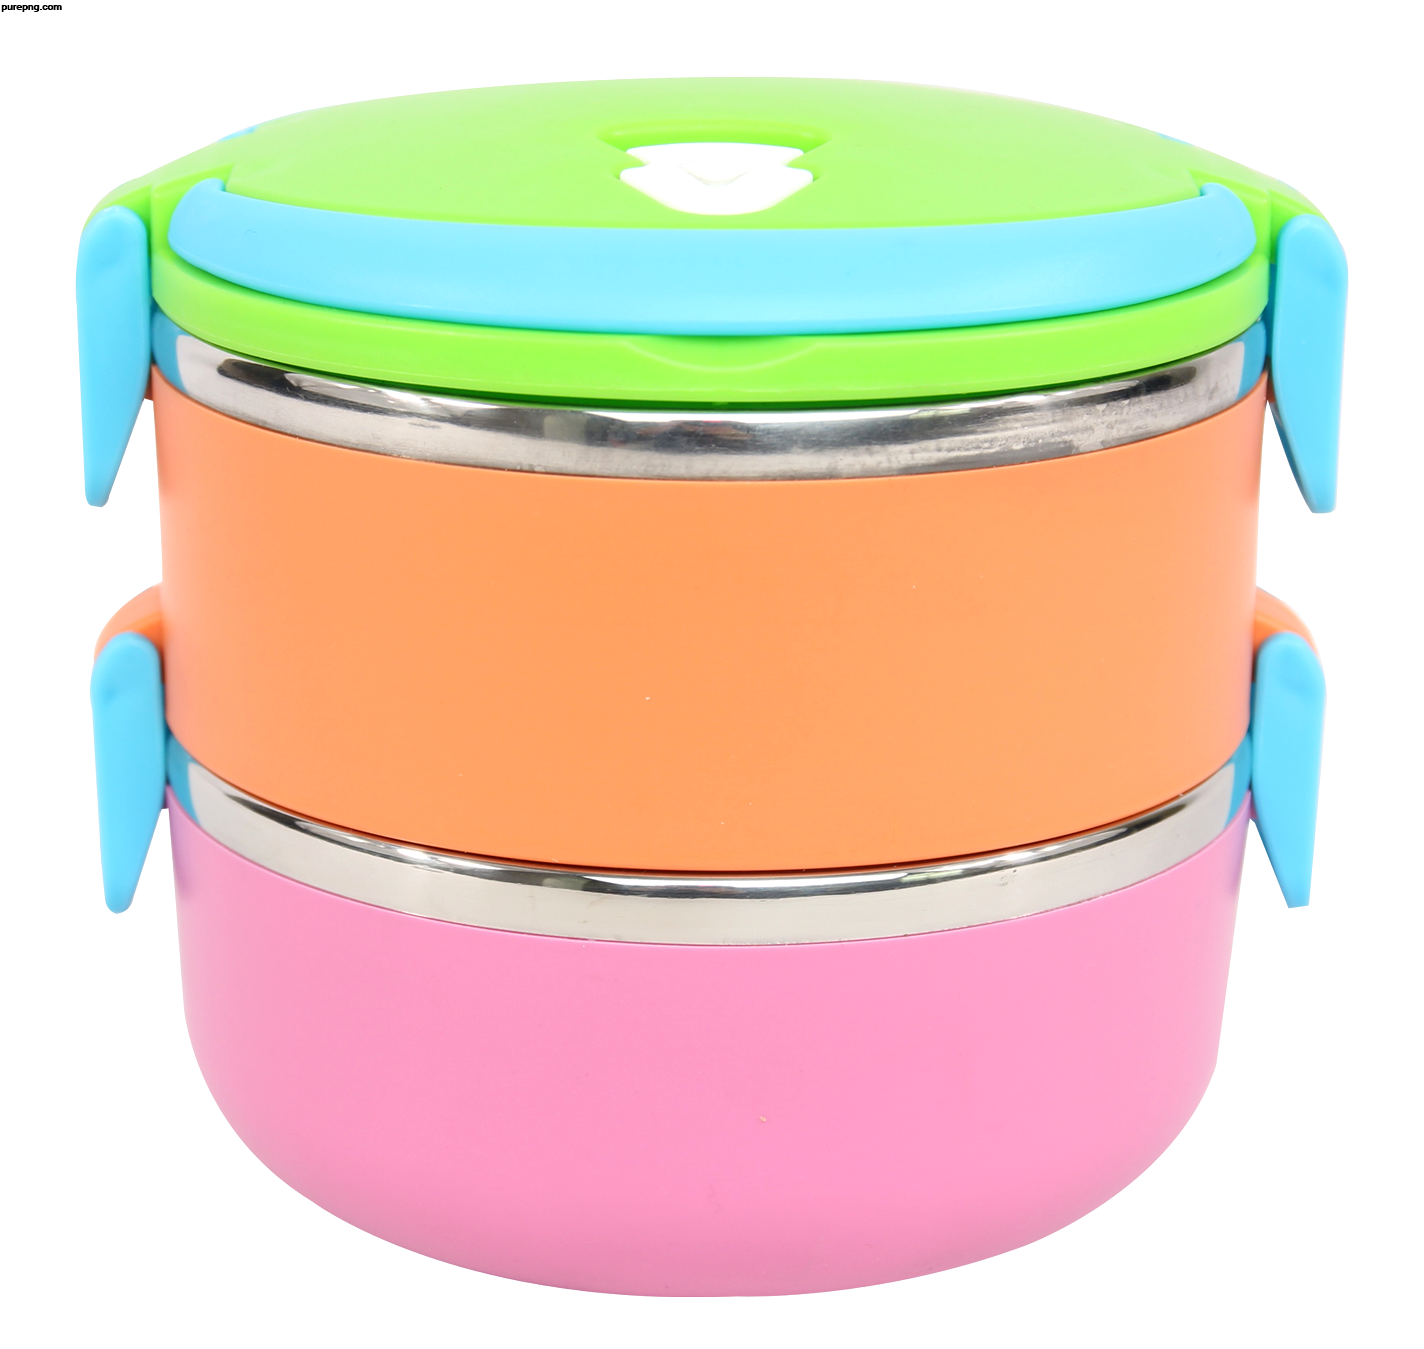 Lunch box clip art. Healthy clipart tiffin